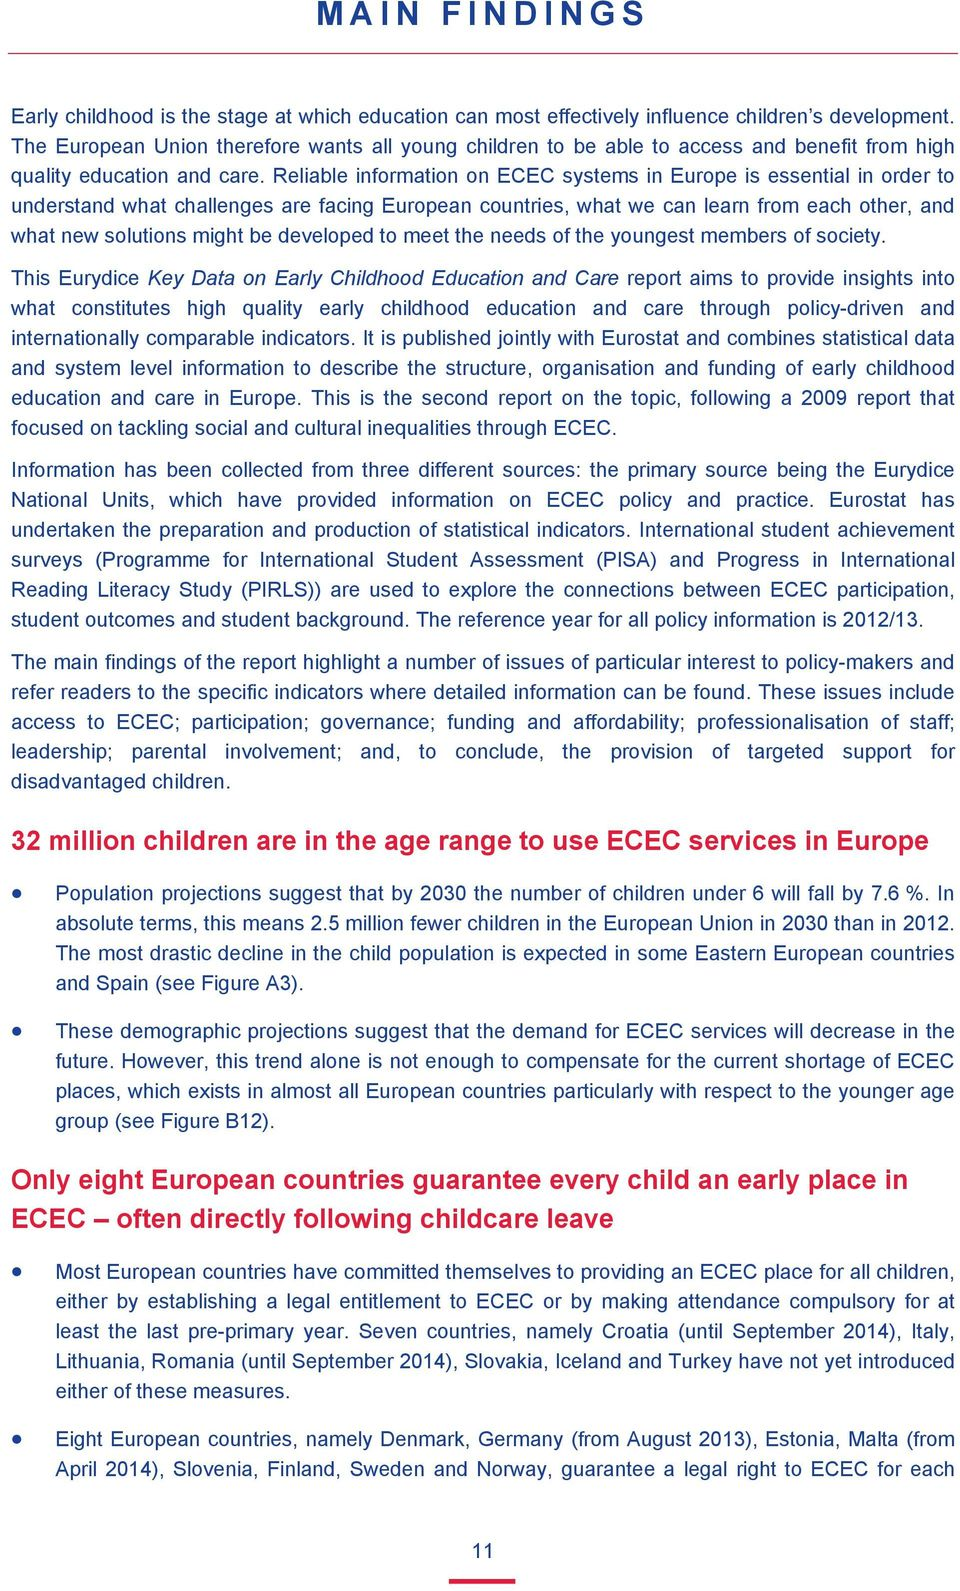 Reliable information on ECEC systems in Europe is essential in order to understand what challenges are facing European countries, what we can learn from each other, and what new solutions might be